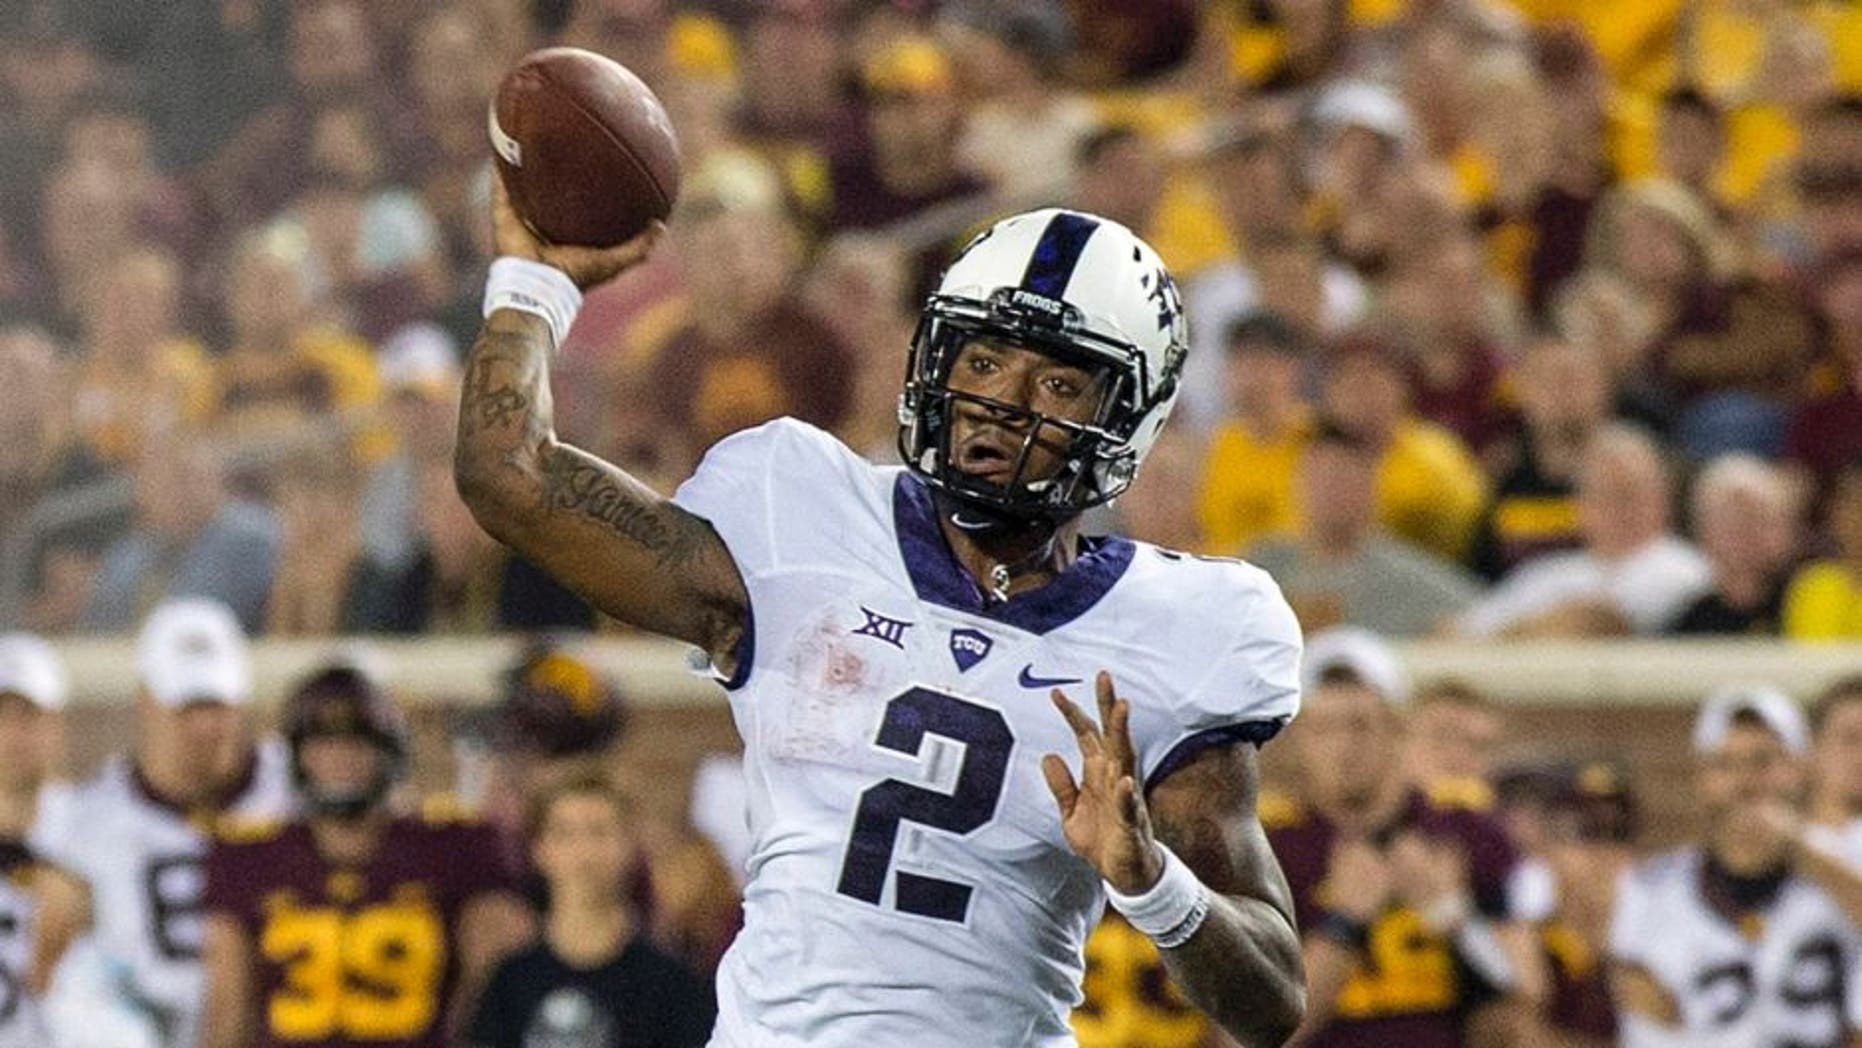 Sep 3, 2015; Minneapolis, MN, USA; TCU Horned Frogs quarterback Trevone Boykin (2) drops back for a pass in the first half against the Minnesota Golden Gophers at TCF Bank Stadium. Mandatory Credit: Jesse Johnson-USA TODAY Sports